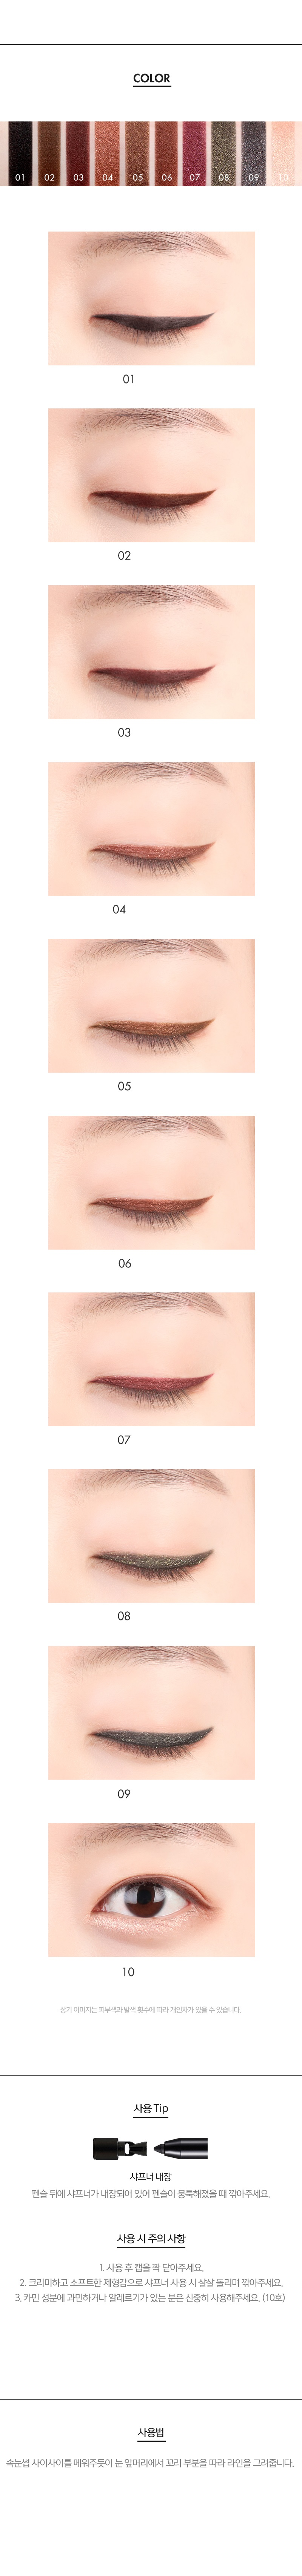 Gel Miracle Fit Super Proof Liner by TONYMOLY #3